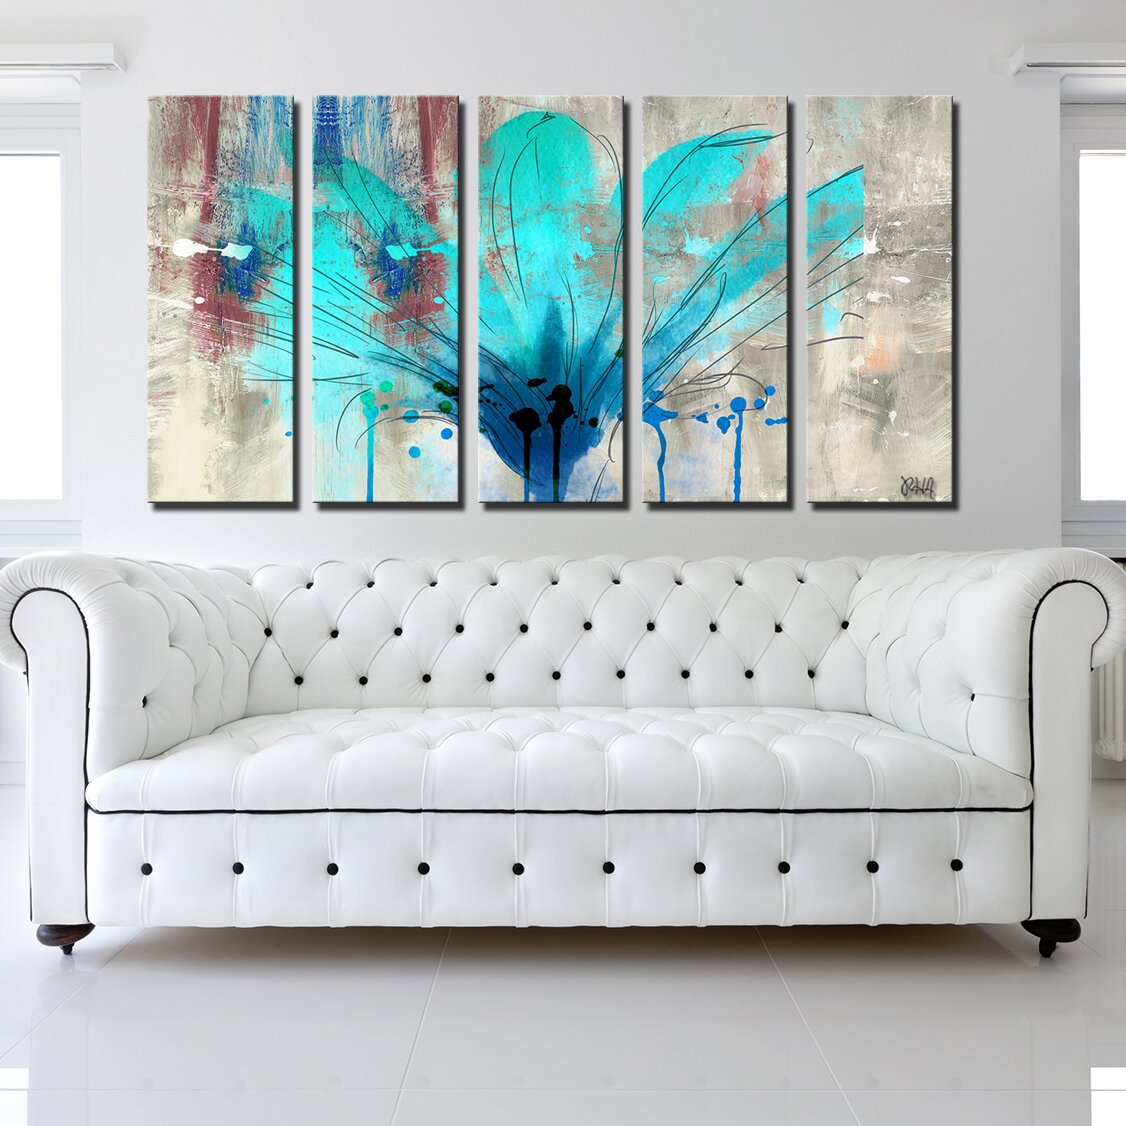 ready2hangart painted petals lii by ready2hangart 5 piece graphic art on canvas set reviews. Black Bedroom Furniture Sets. Home Design Ideas